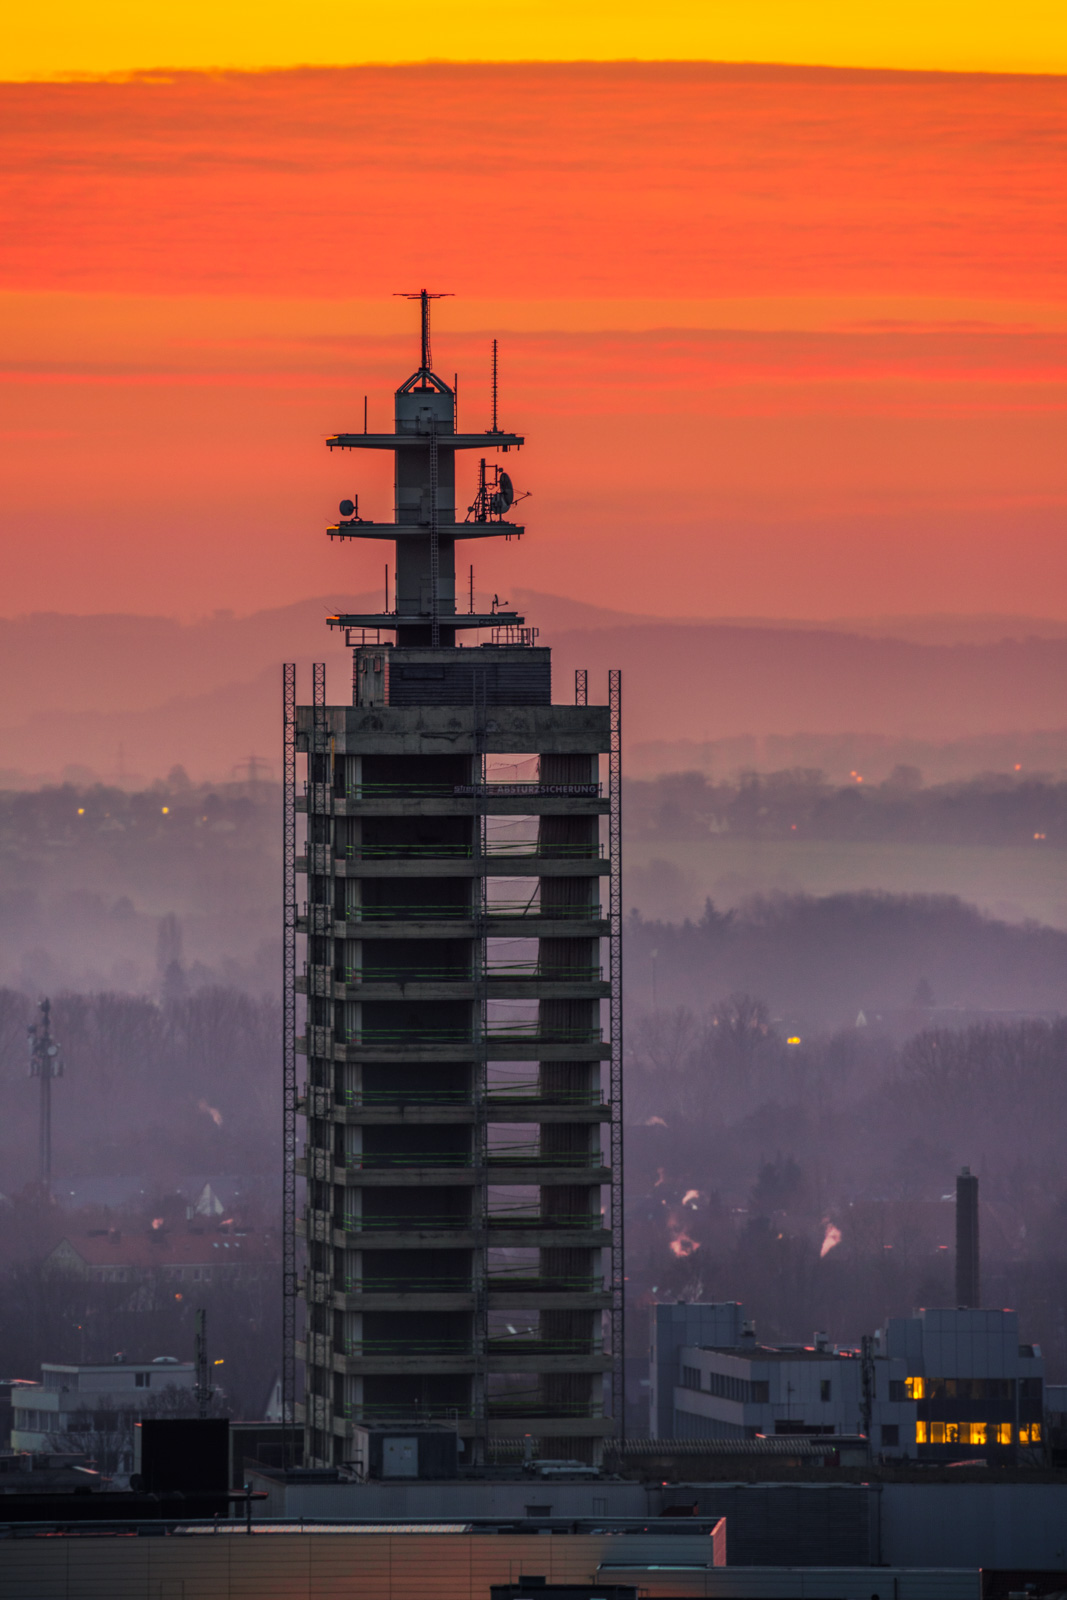 High-rise under construction on 20 February 2021 (Bielefeld, Germany).